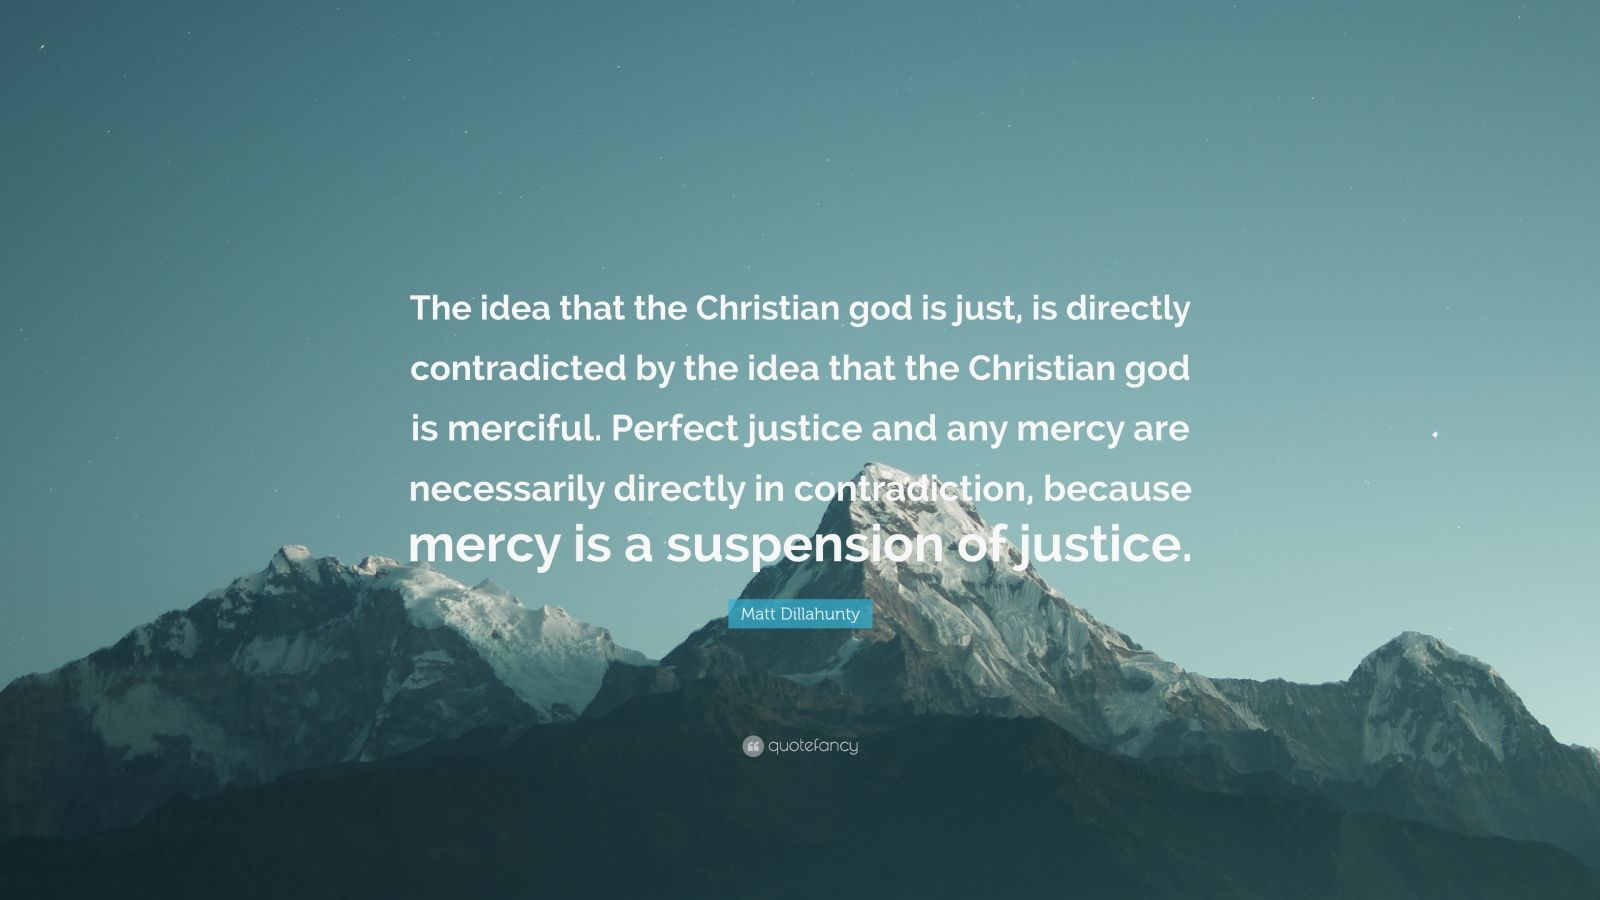 """Matt Dillahunty Quote: """"The idea that the Christian god is just, is directly contradicted by the idea that the Christian god is merciful. Perfect justice and any mercy are necessarily directly in contradiction, because mercy is a suspension of justice."""""""